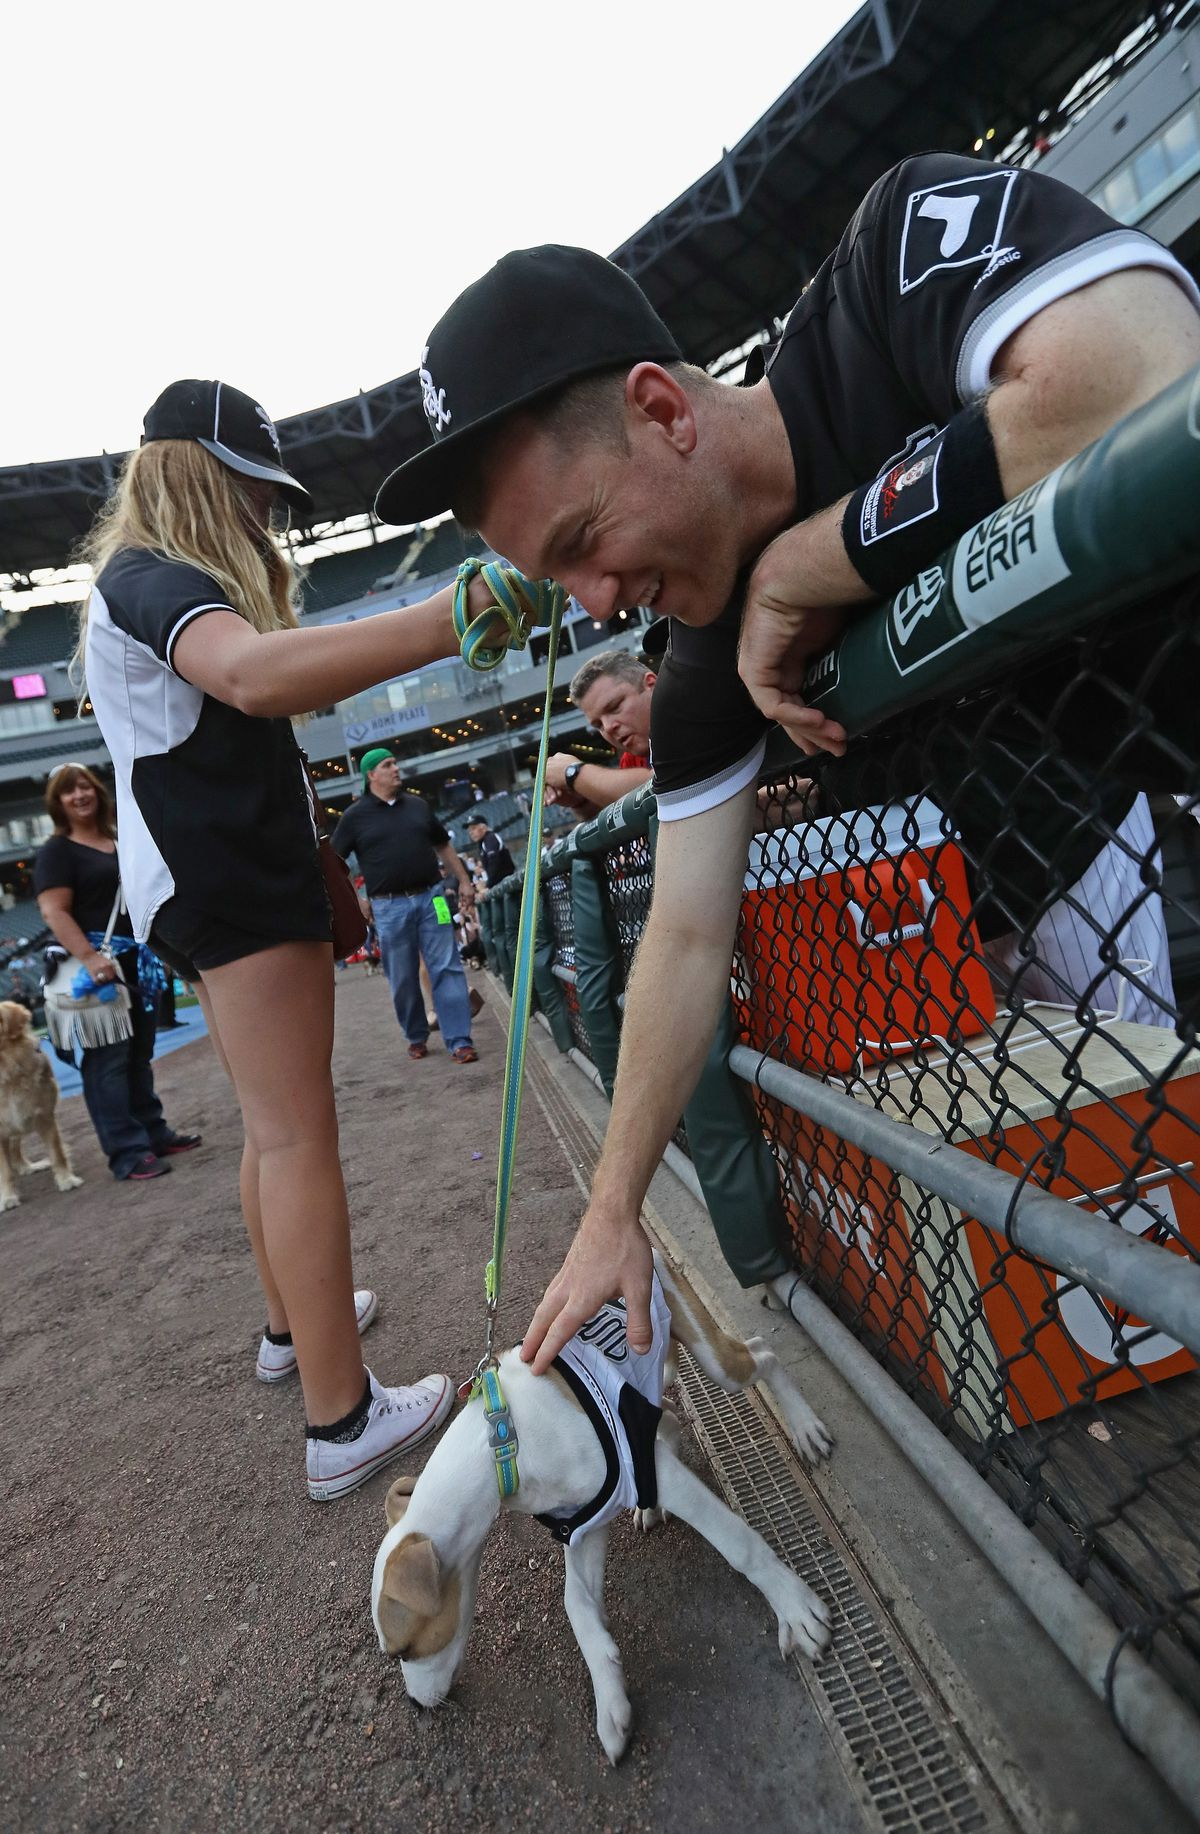 Todd Frazier pets a puppy. (Photos by Jonathan Daniel/Getty Images)